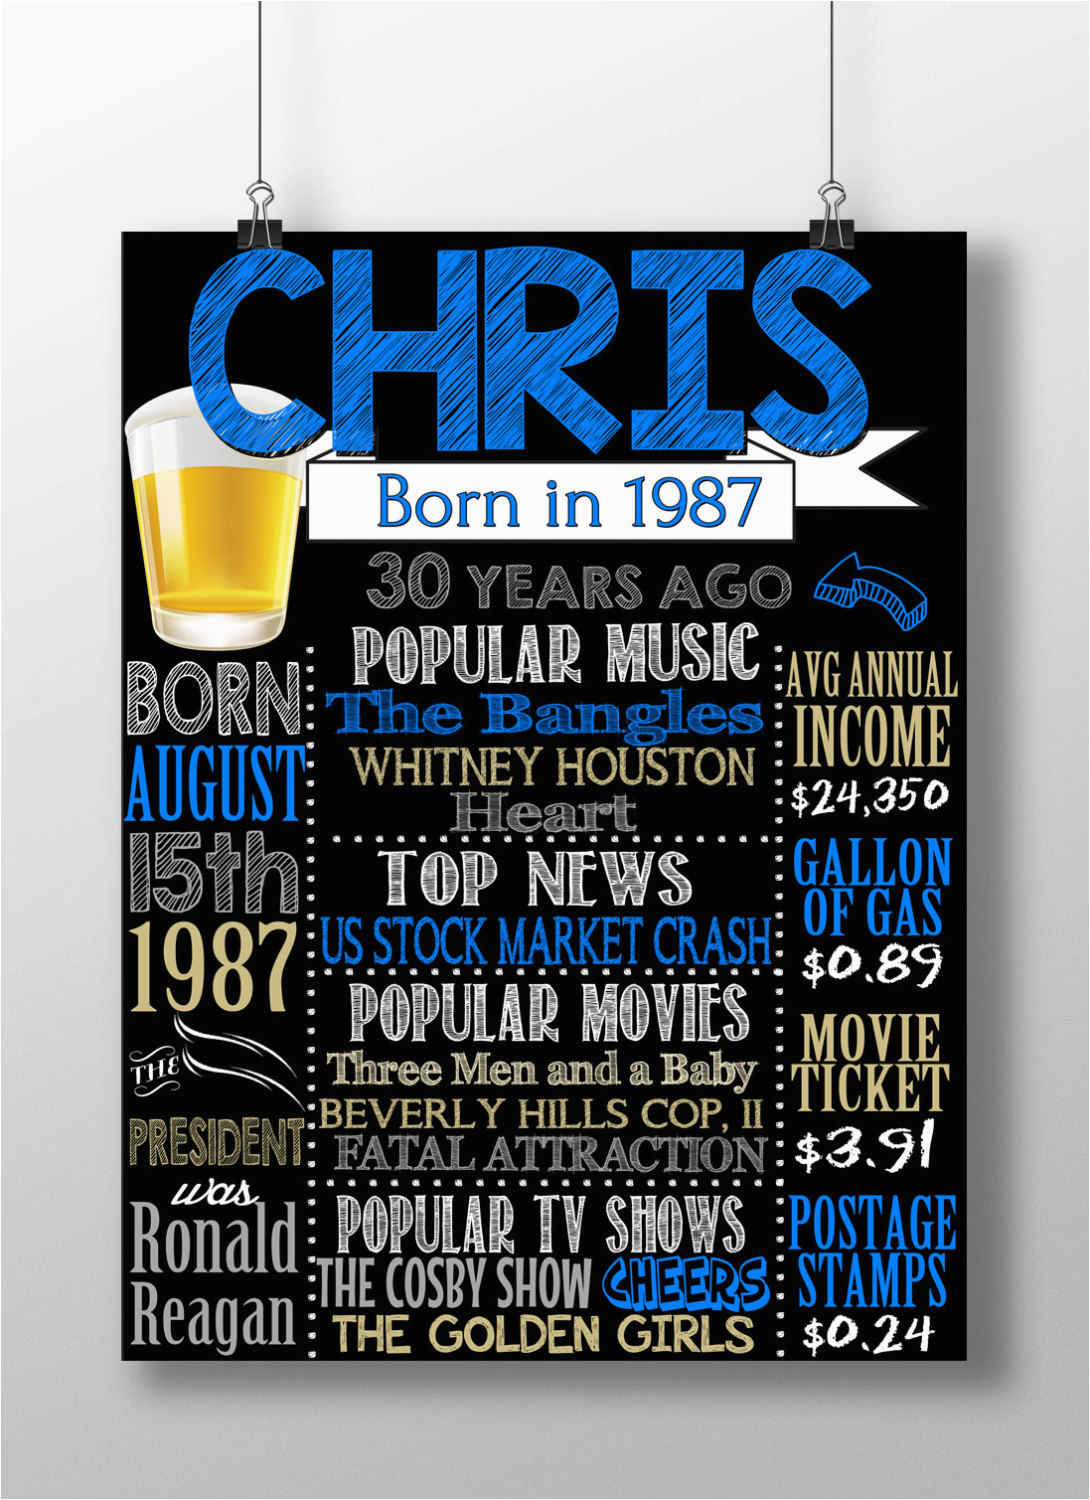 Birthday Celebration Ideas for Him In Johannesburg 30th Birthday for Him All the Things Happening In 1987 Back